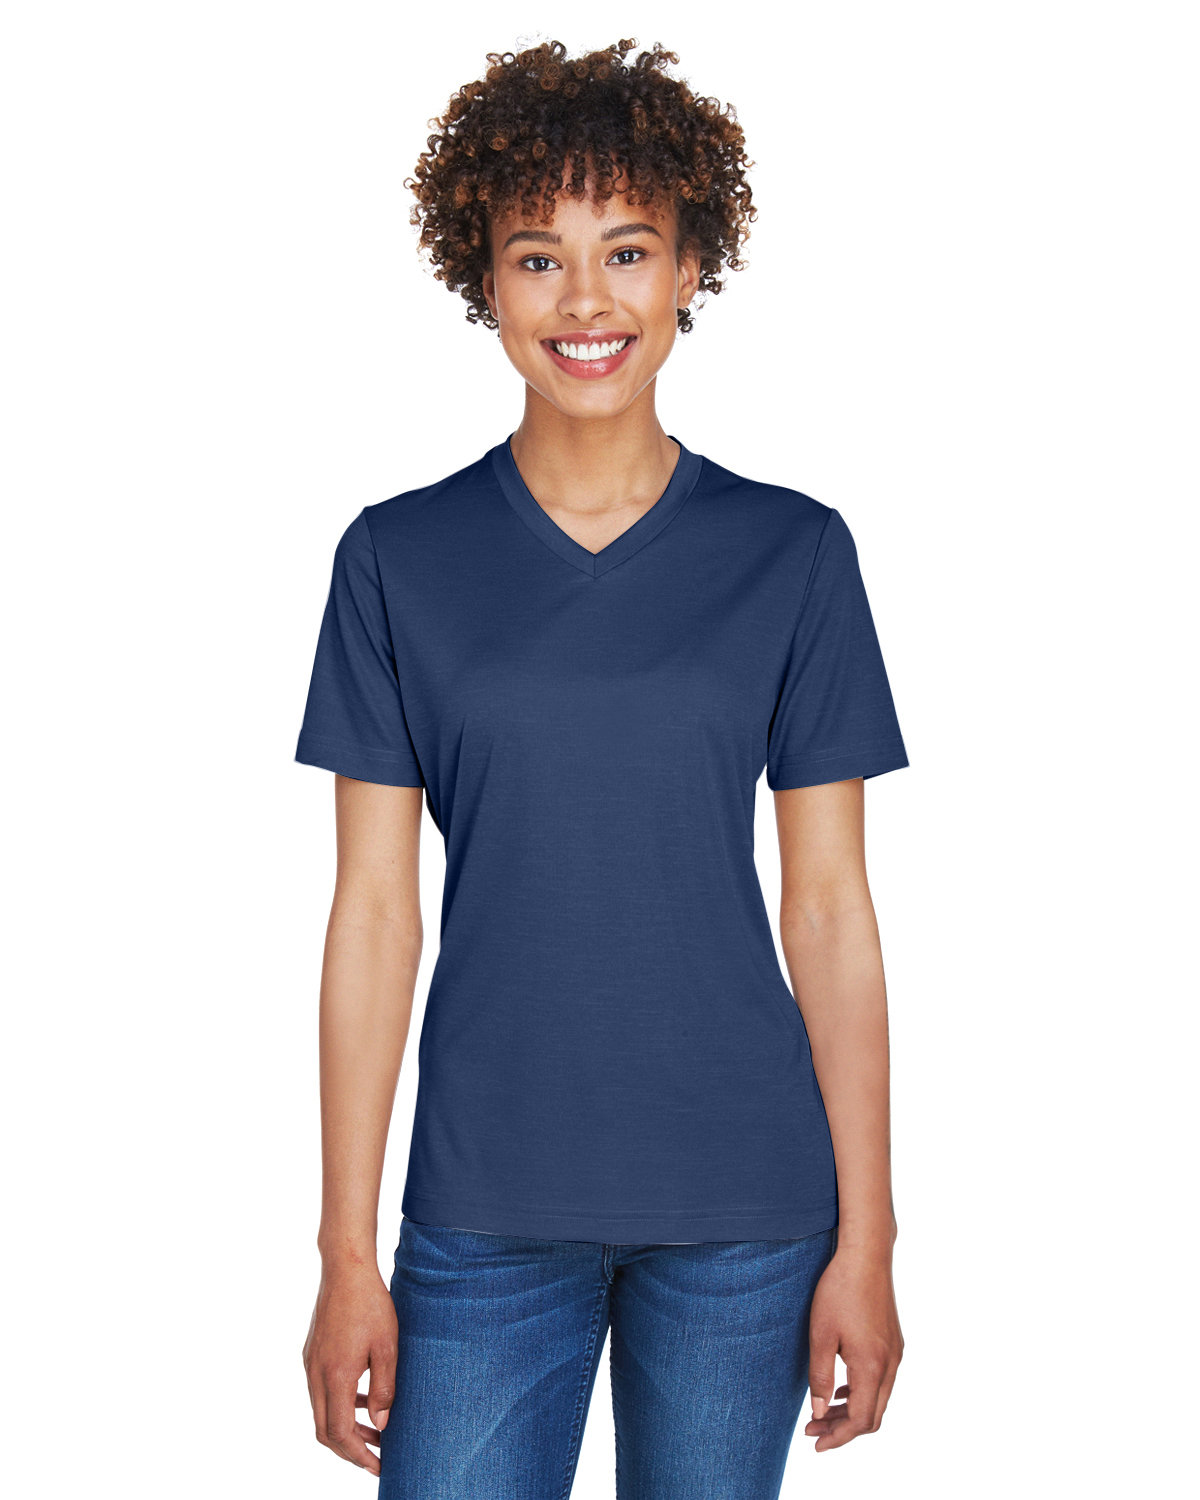 Team 365 Ladies' Sonic Heather Performance T-Shirt SP DRK NVY HTH